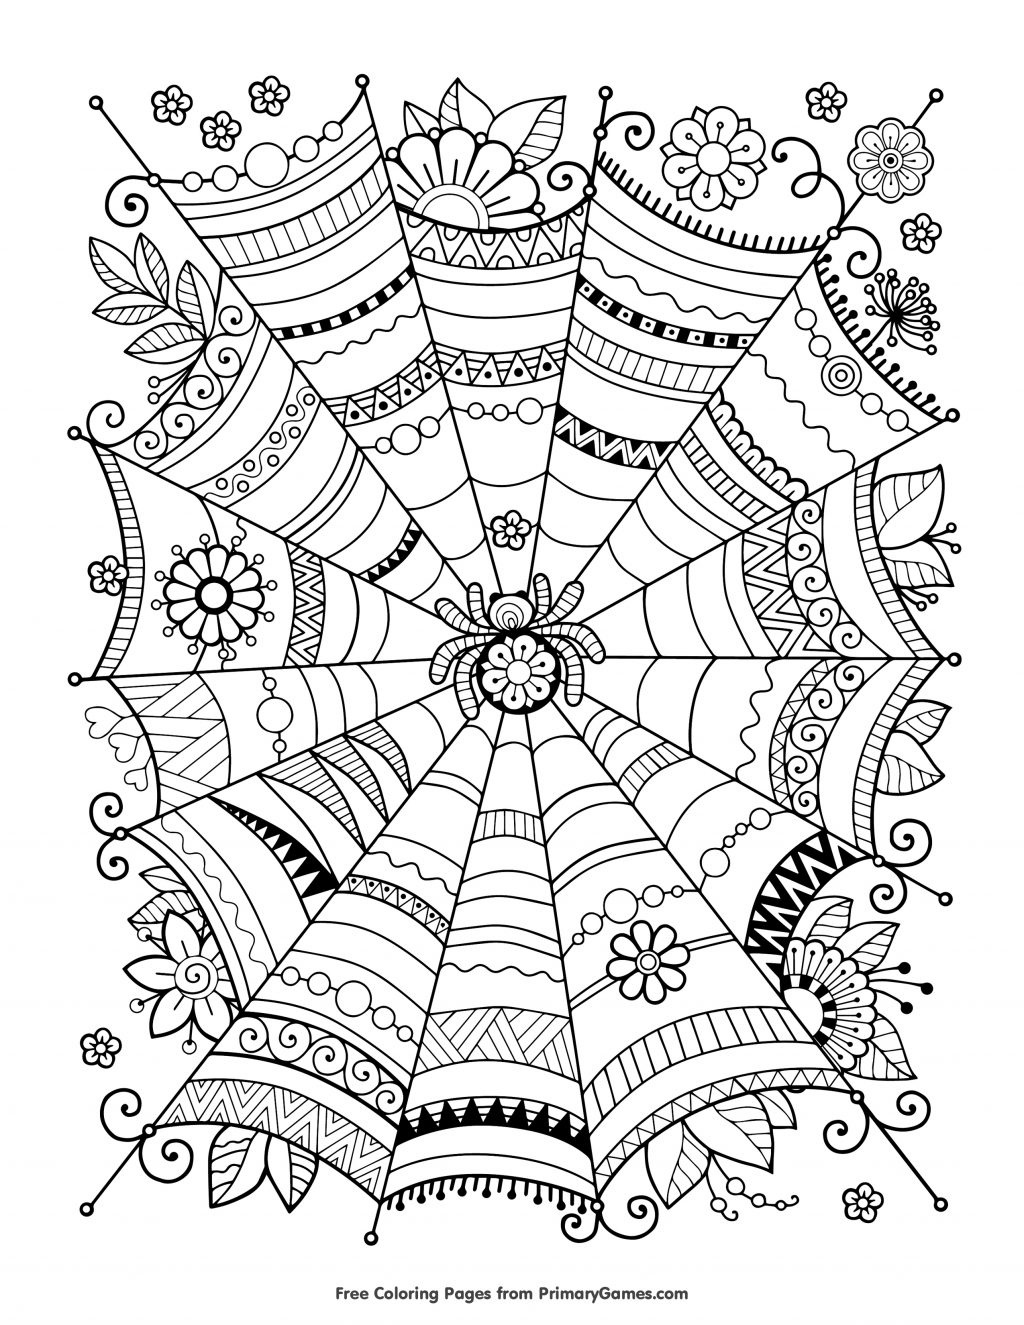 Coloring ~ Zen Coloring Pages And Love Anti Stress Adult Page Image - Free Printable Zen Coloring Pages